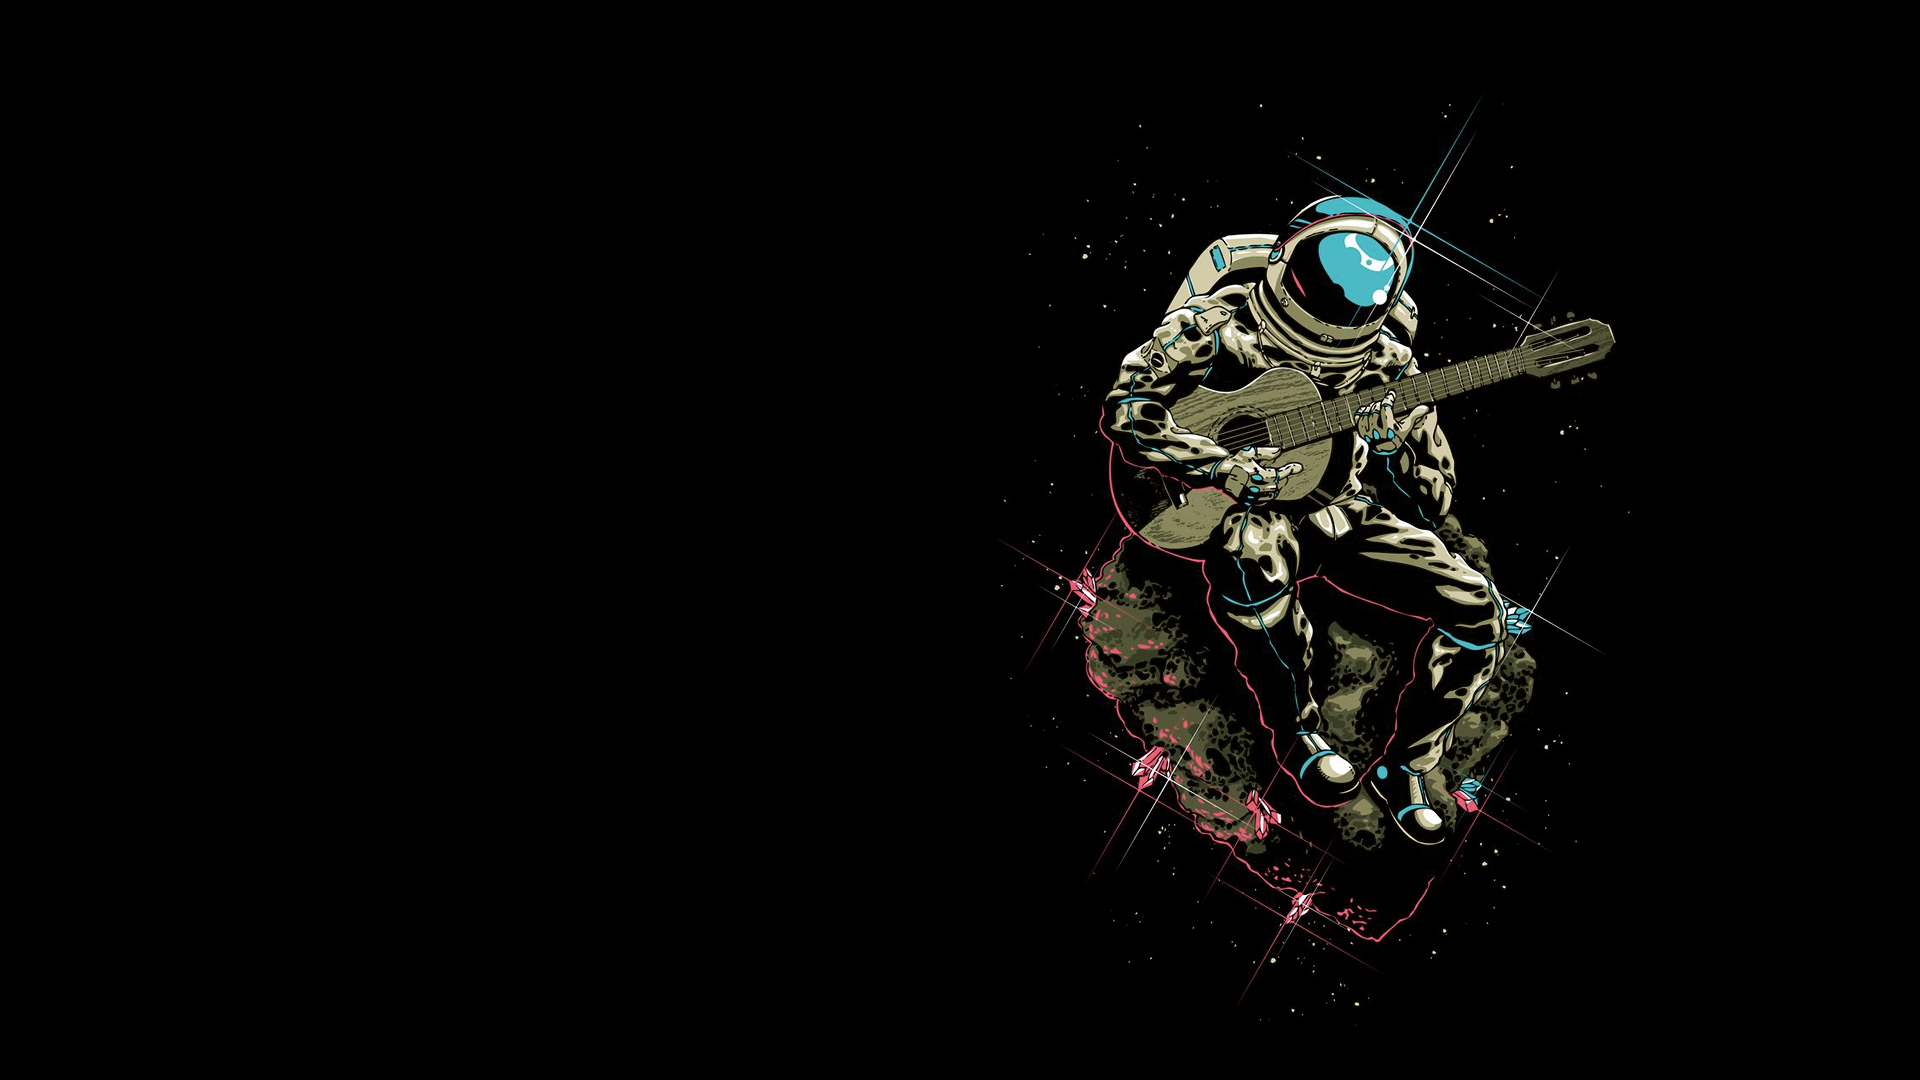 Astronaut Wallpapers for Desktop (1920x1080, 659.94 Kb)